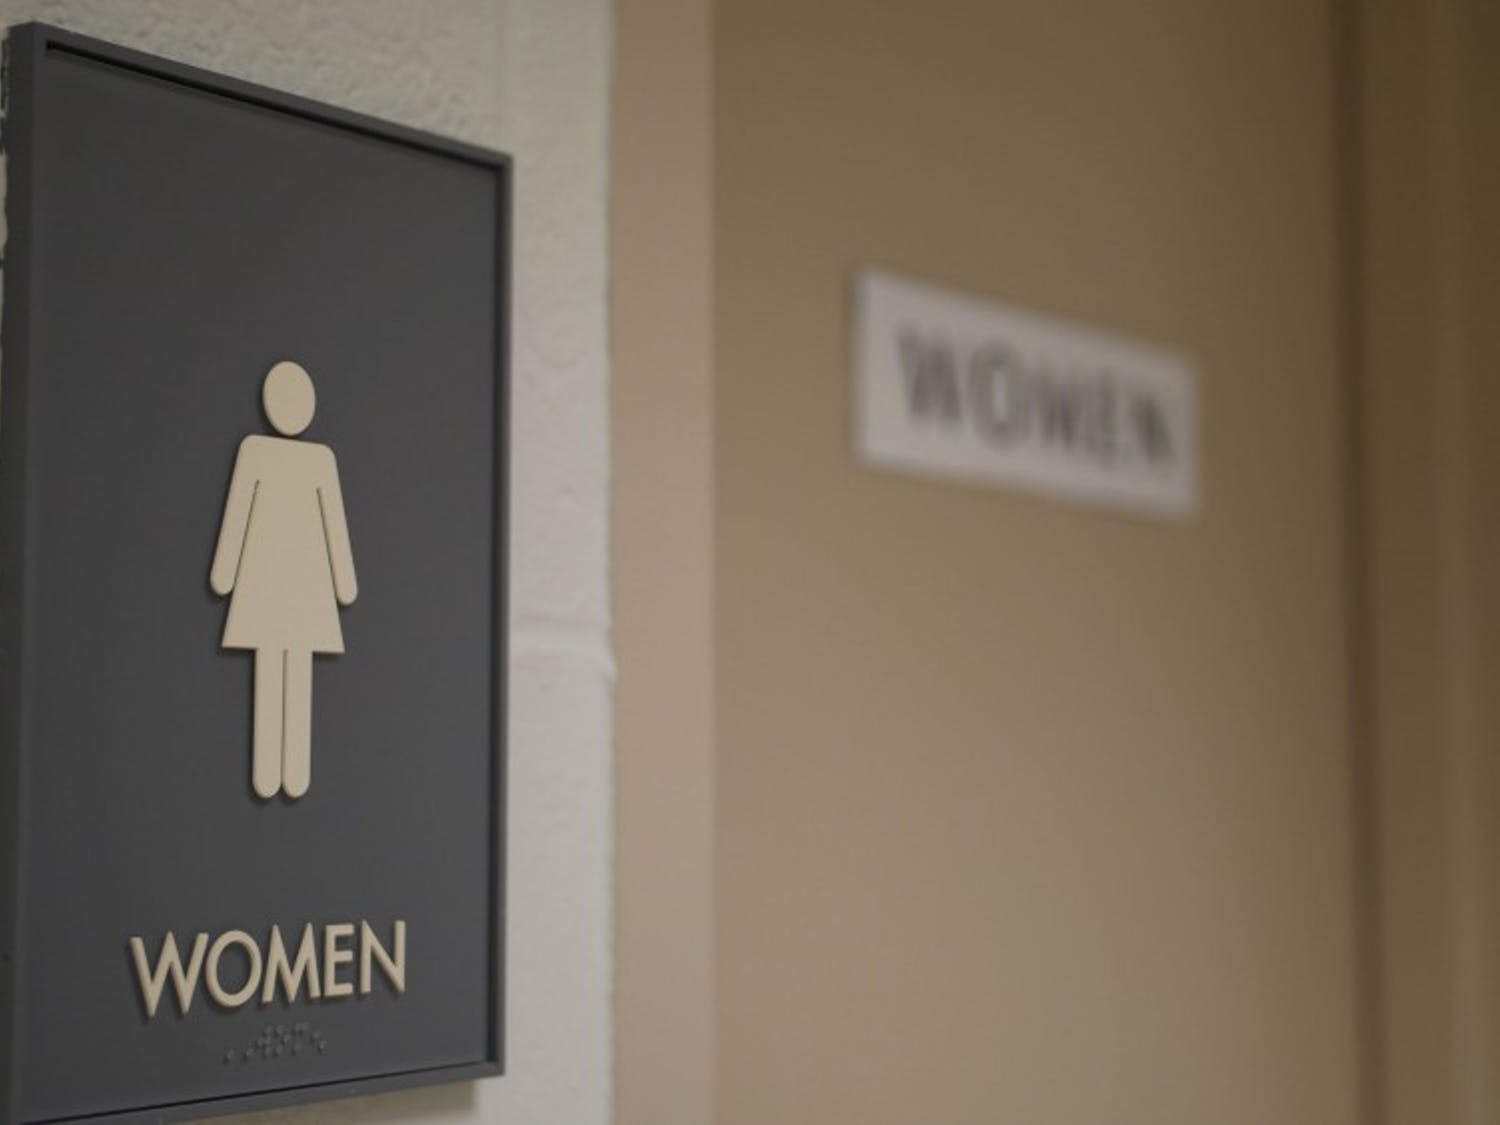 A SUNY resolution was passed this October to provide students with free menstrual products in all on-campus restrooms.